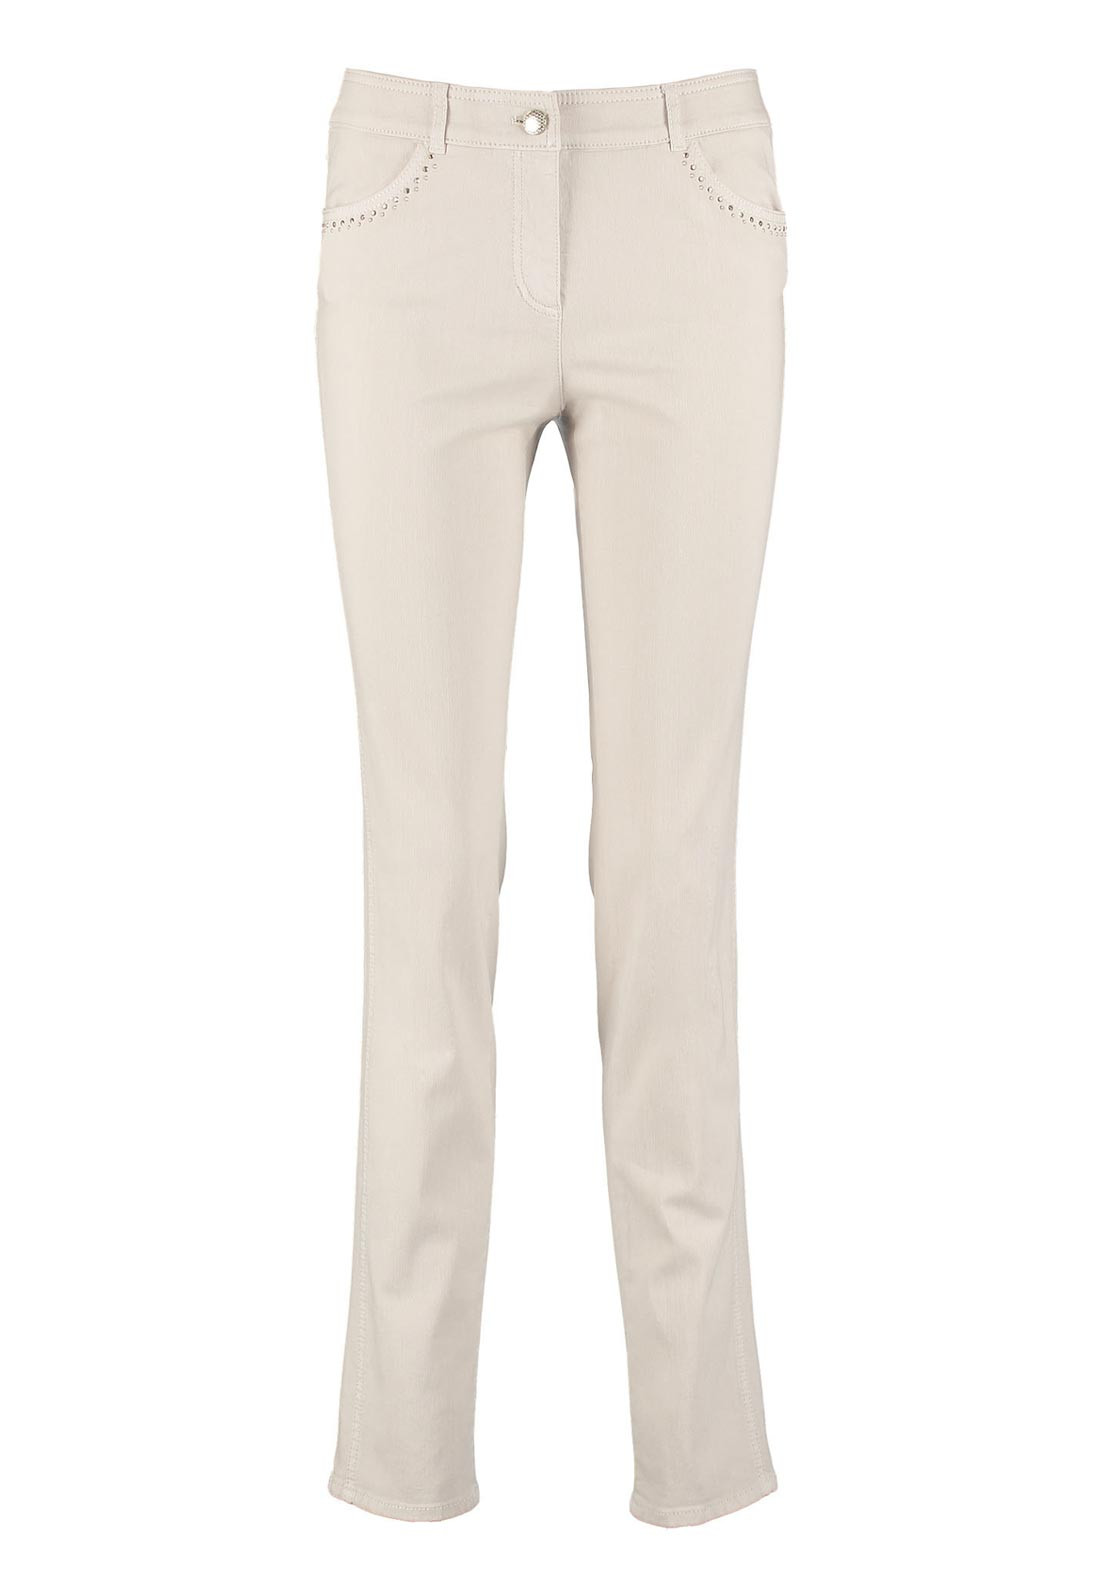 Gerry Weber Gemstone Embellished Straight Leg Jeans, Beige